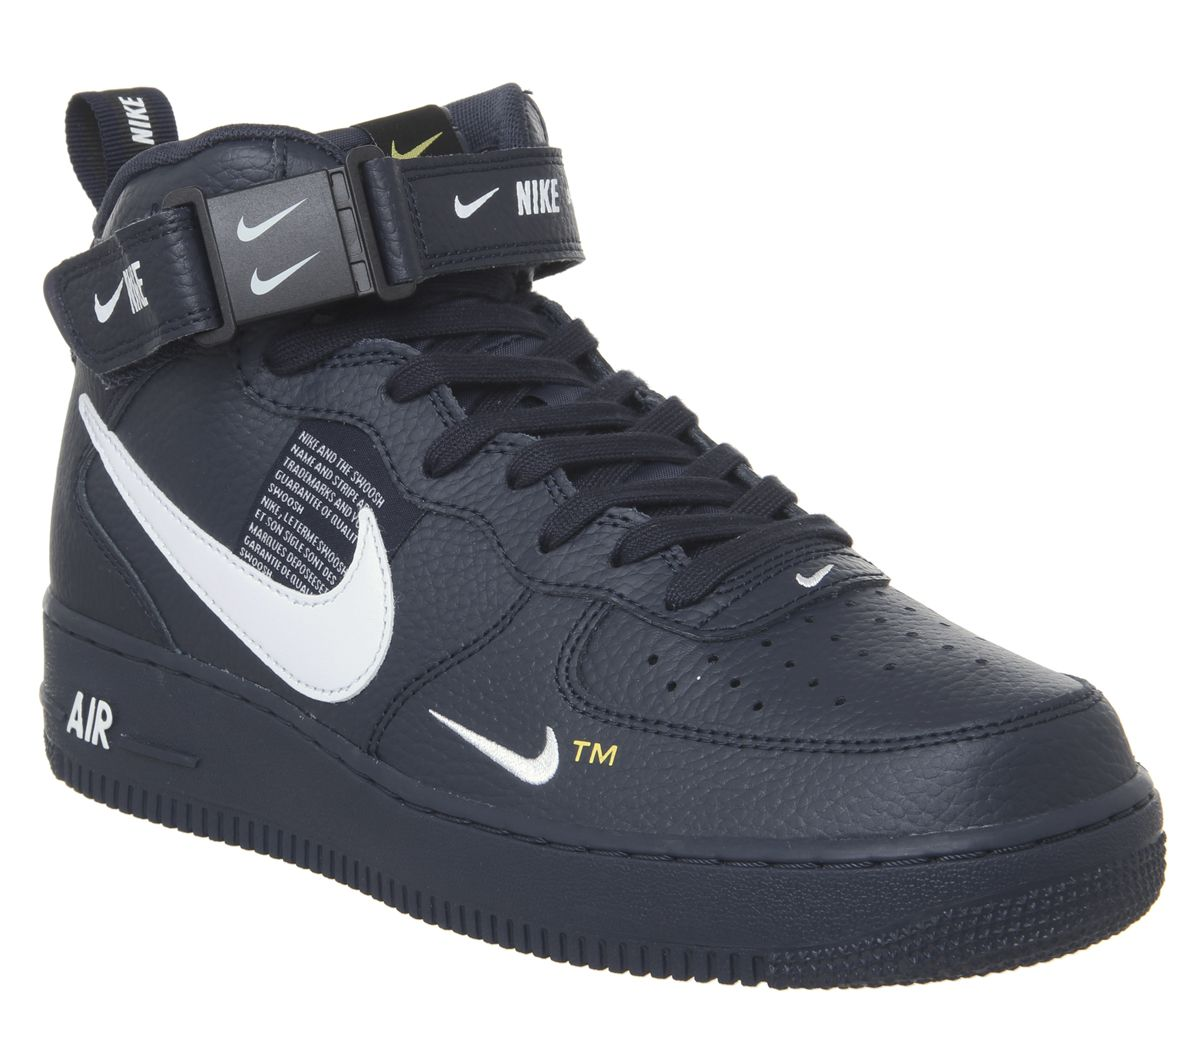 fce89e945a0475 Nike Air Force 1 Mid Lv8 Trainers Obsidian White Black Tour Yellow ...